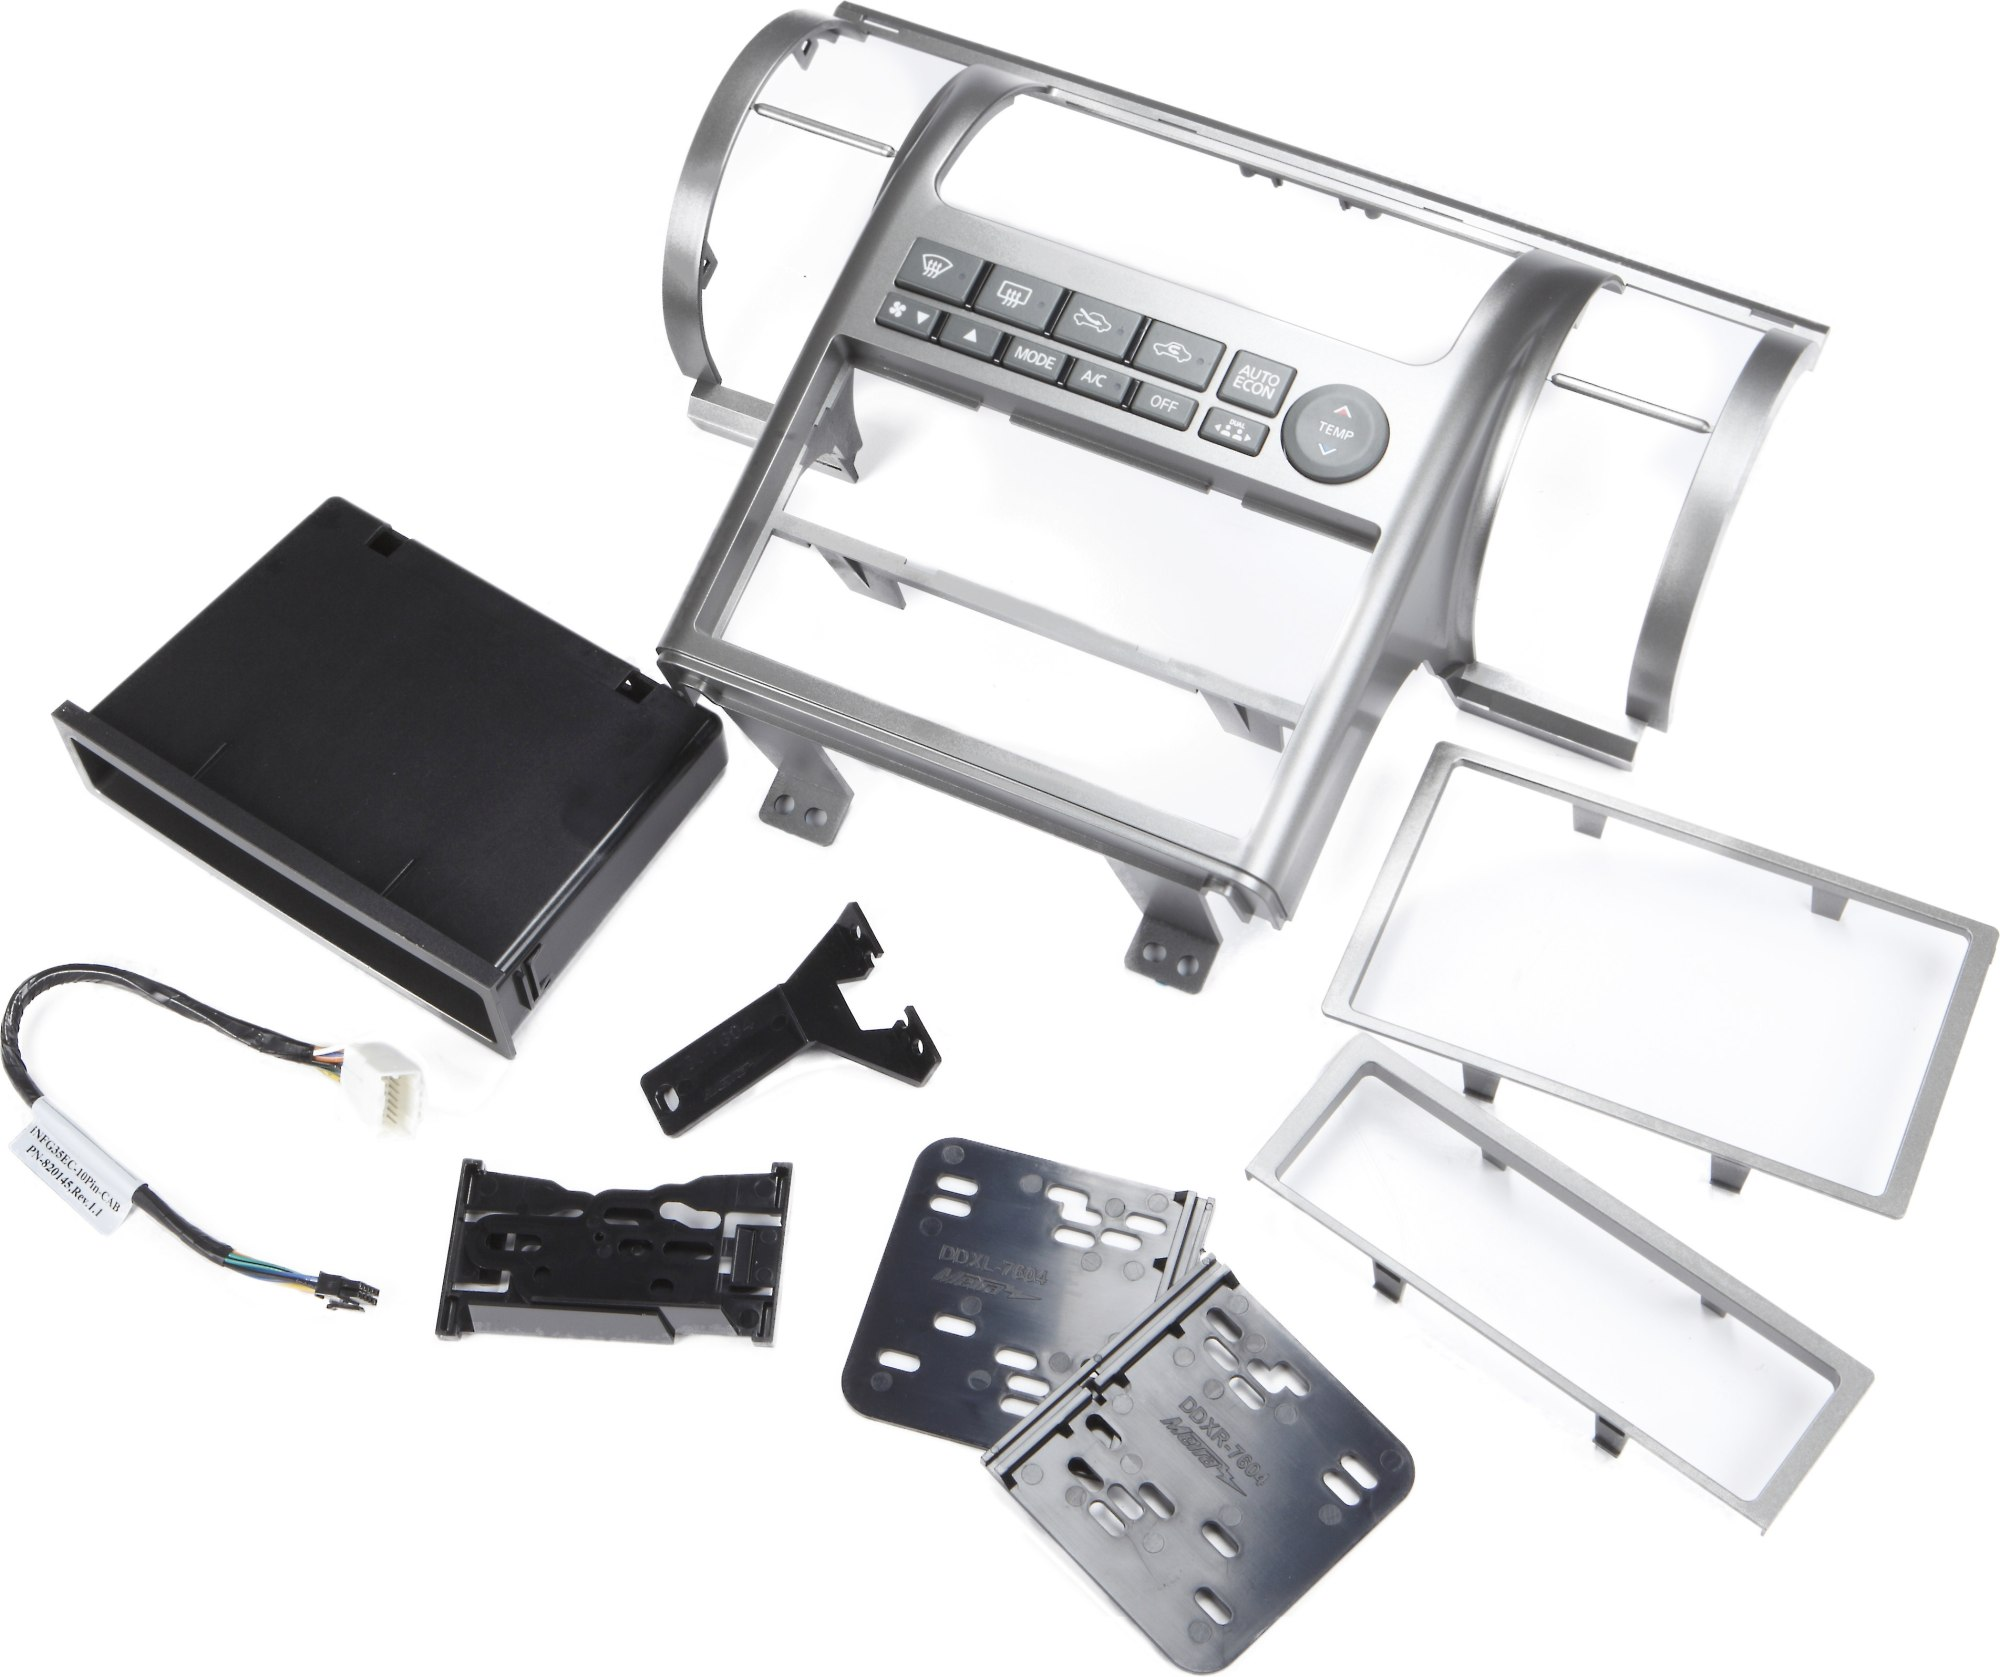 hight resolution of metra 99 7604 dash kit gray install a new single din or double din car stereo in your 2003 04 infiniti g35 at crutchfield canada